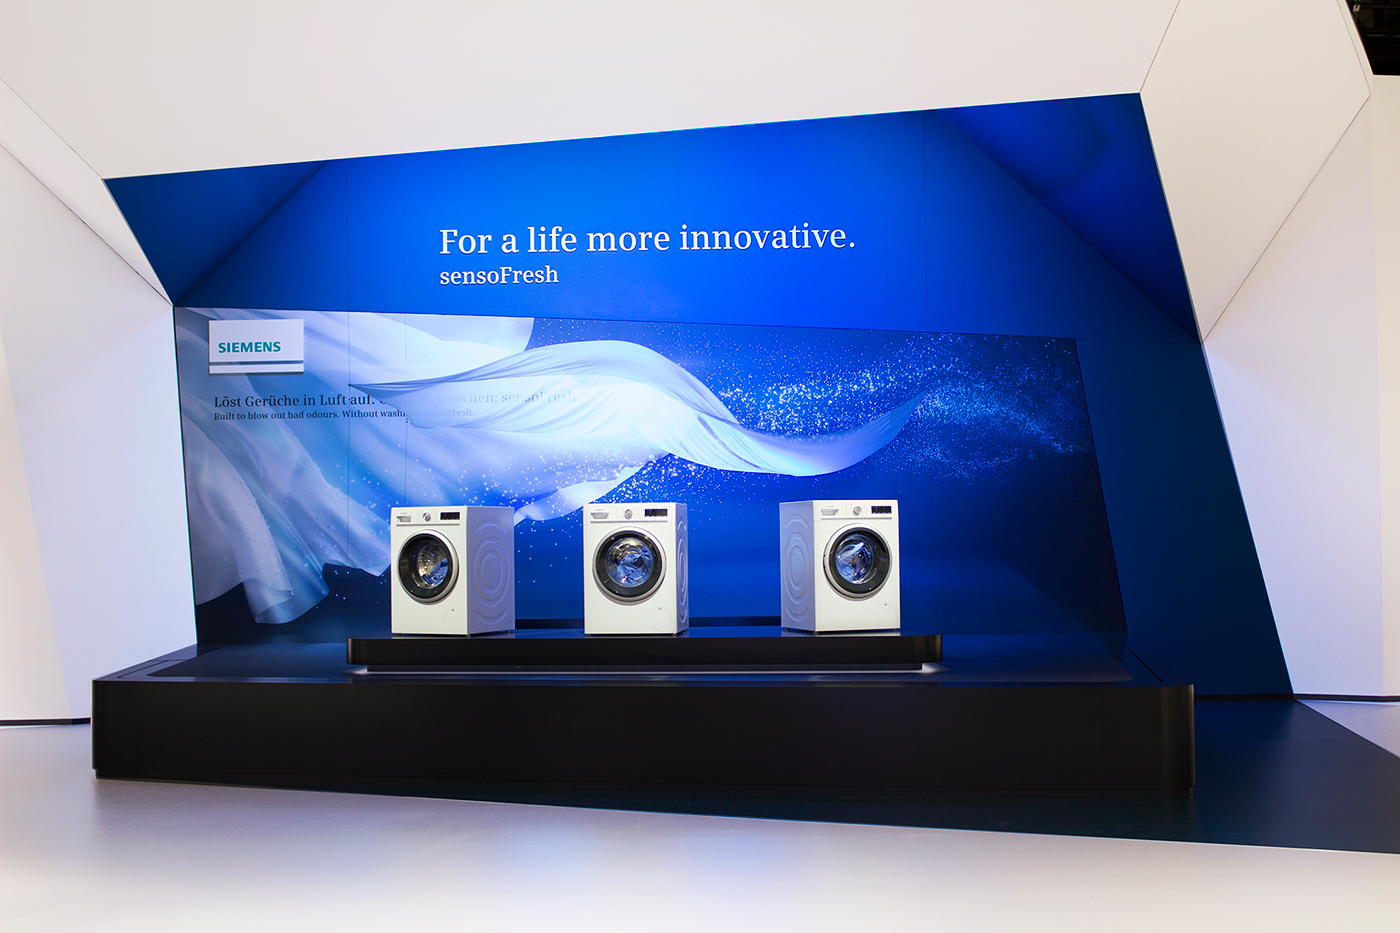 home connect - siemens home appliances at ifa 2015 on behance